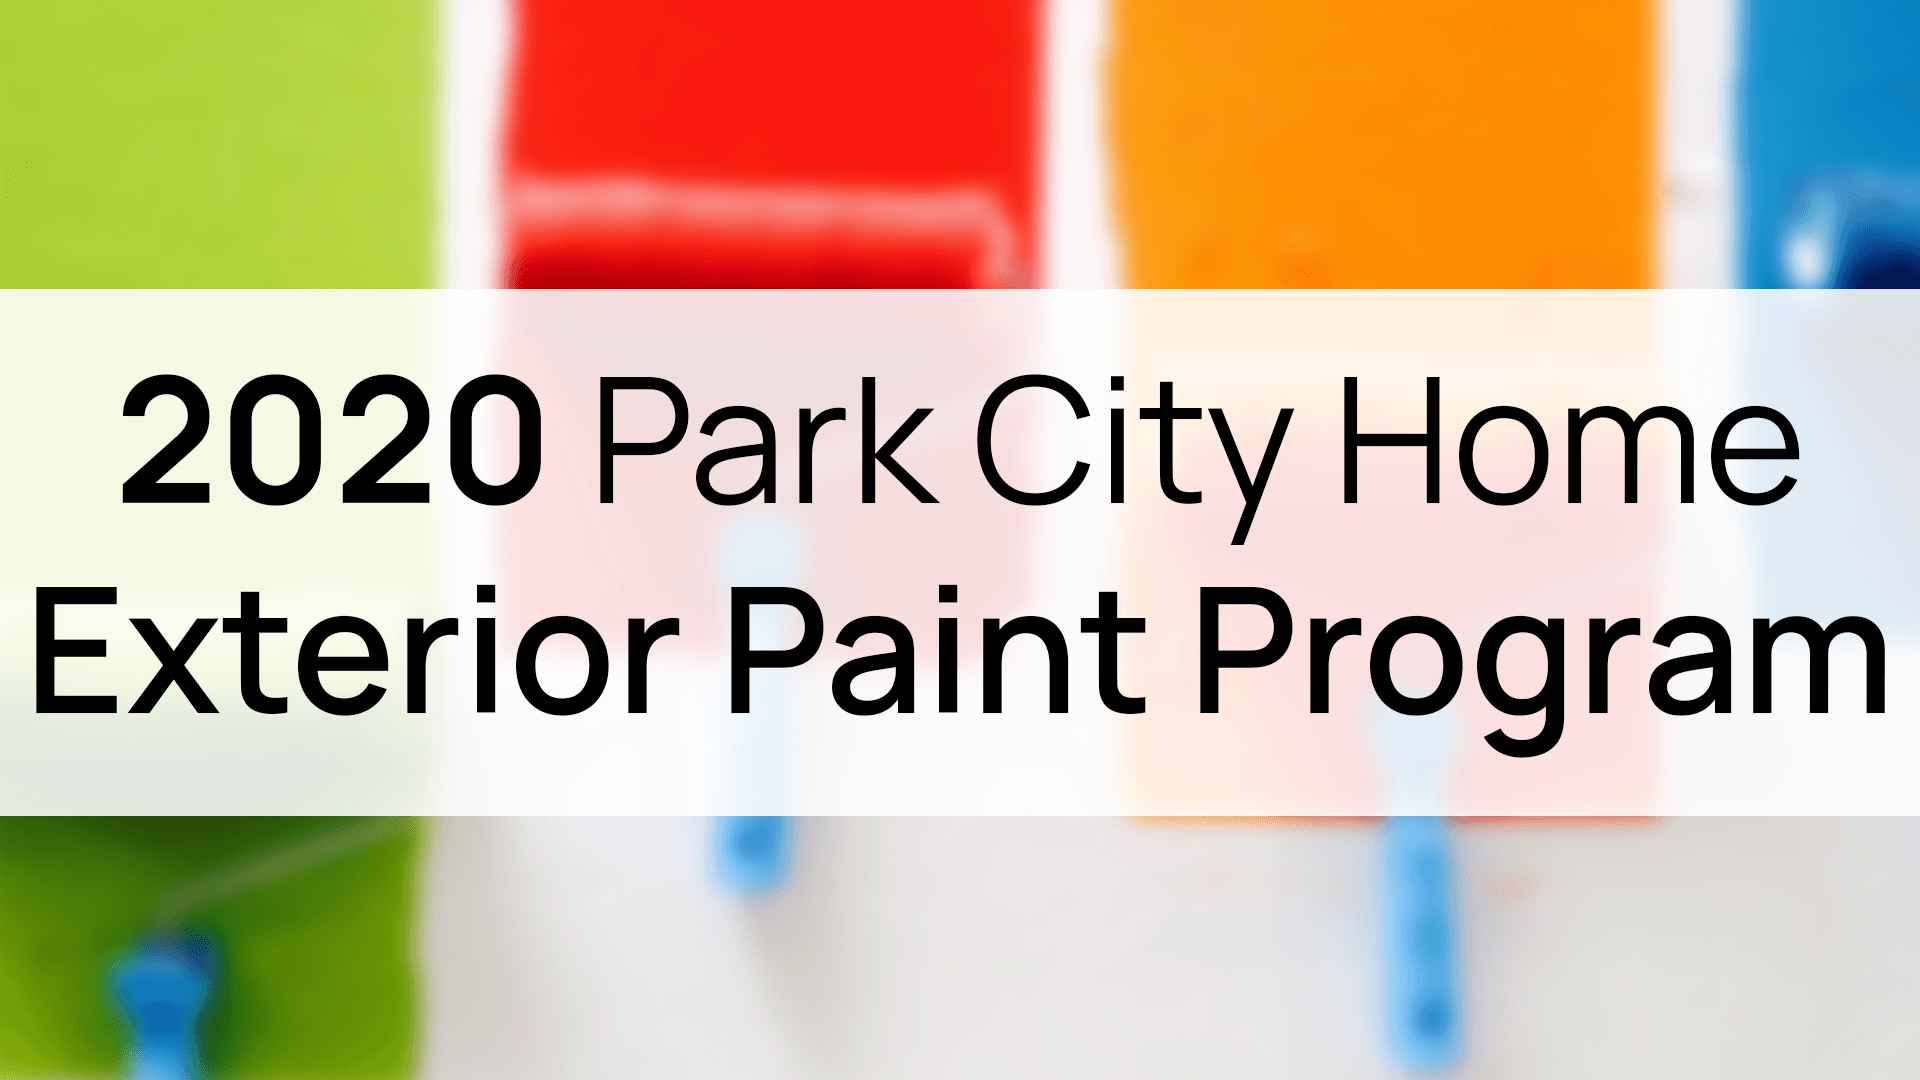 2020 Exterior Paint Program Header Image